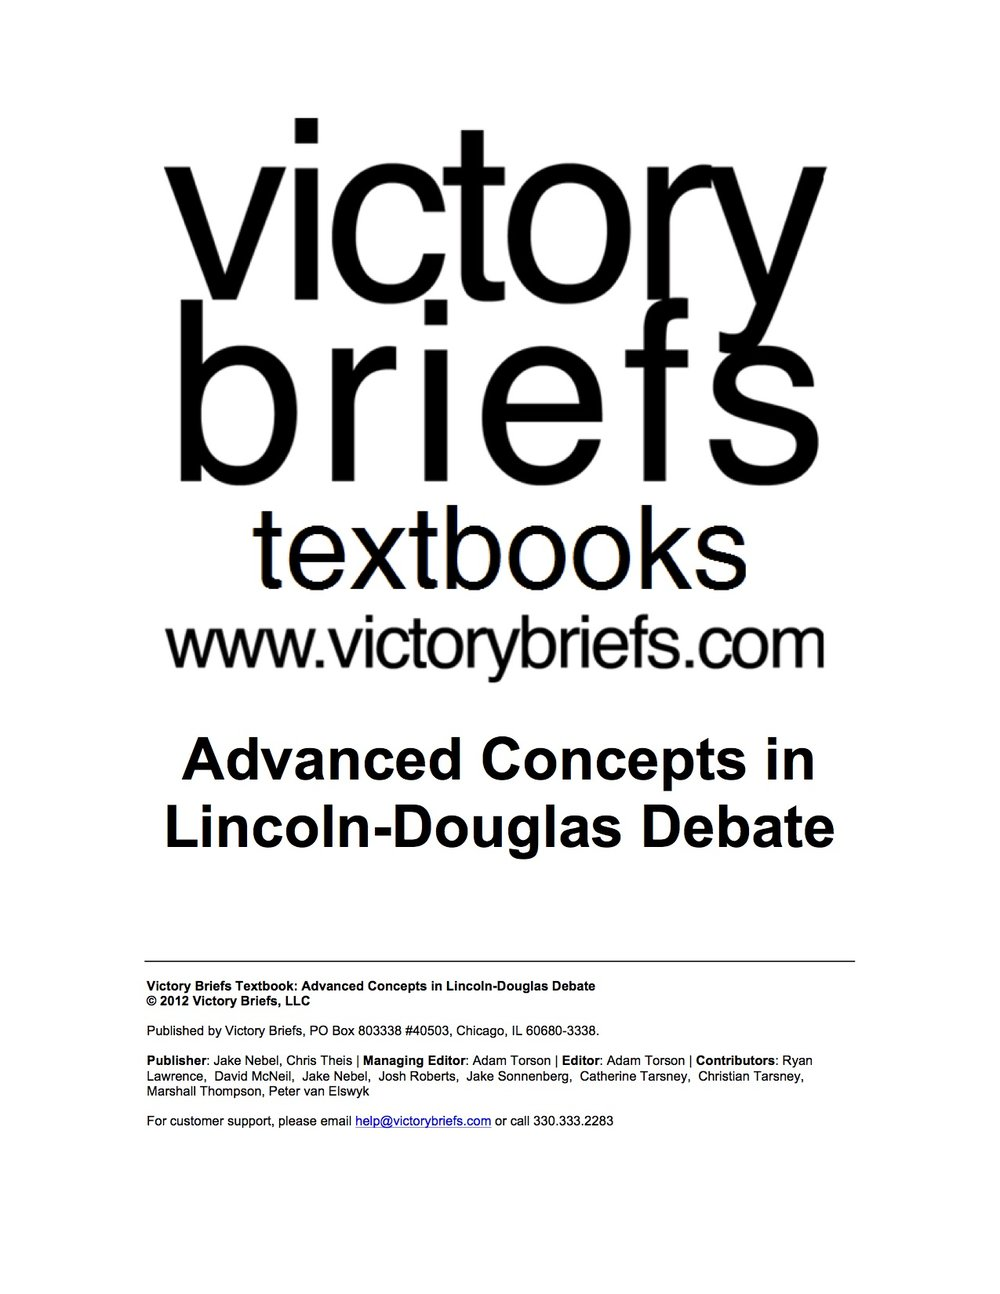 Advanced Concepts in LD -